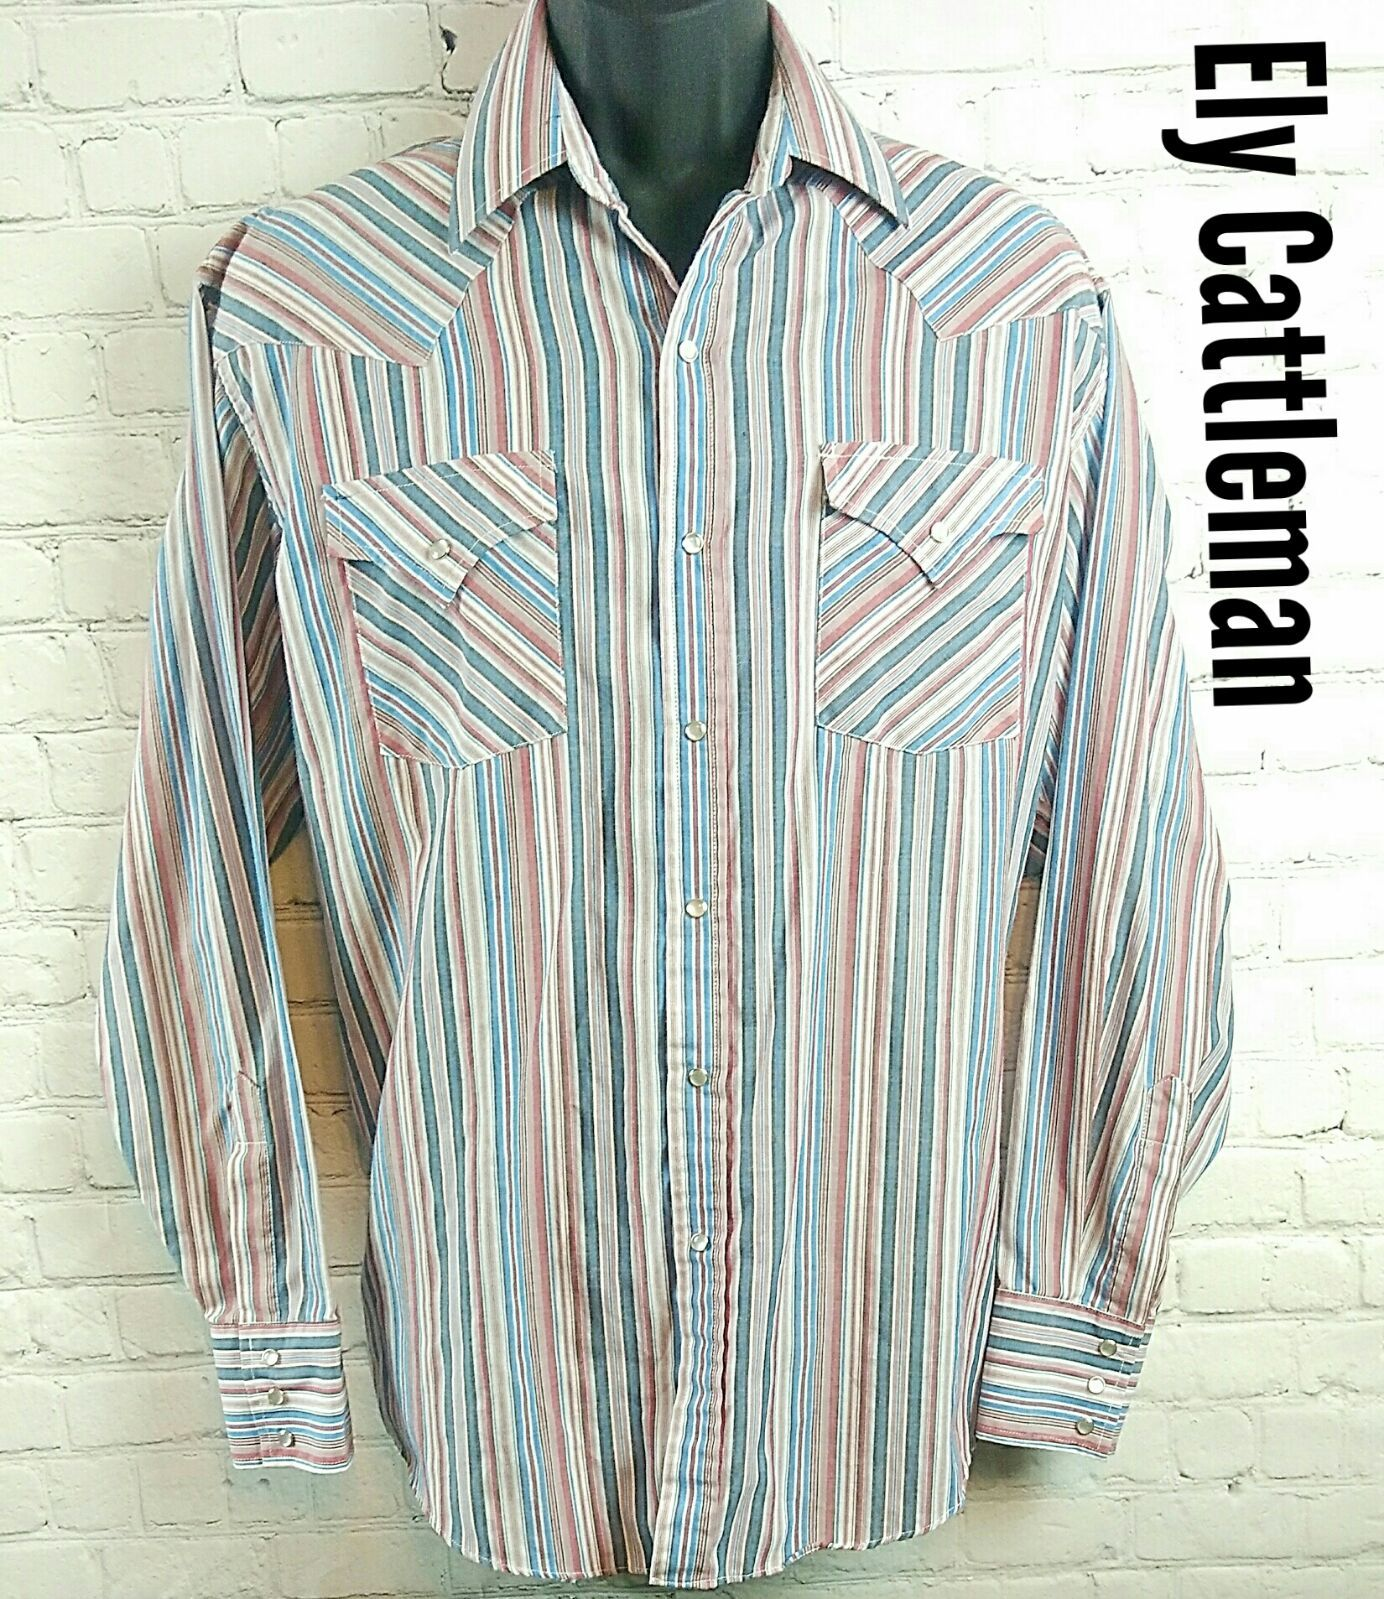 Good Pre Loved Condition With No Holes Or Stains But Color Is Faded Gives It A Vintage Vibe Size Is Men S Large Blue Pearl Vintage Vibes Outfit Accessories